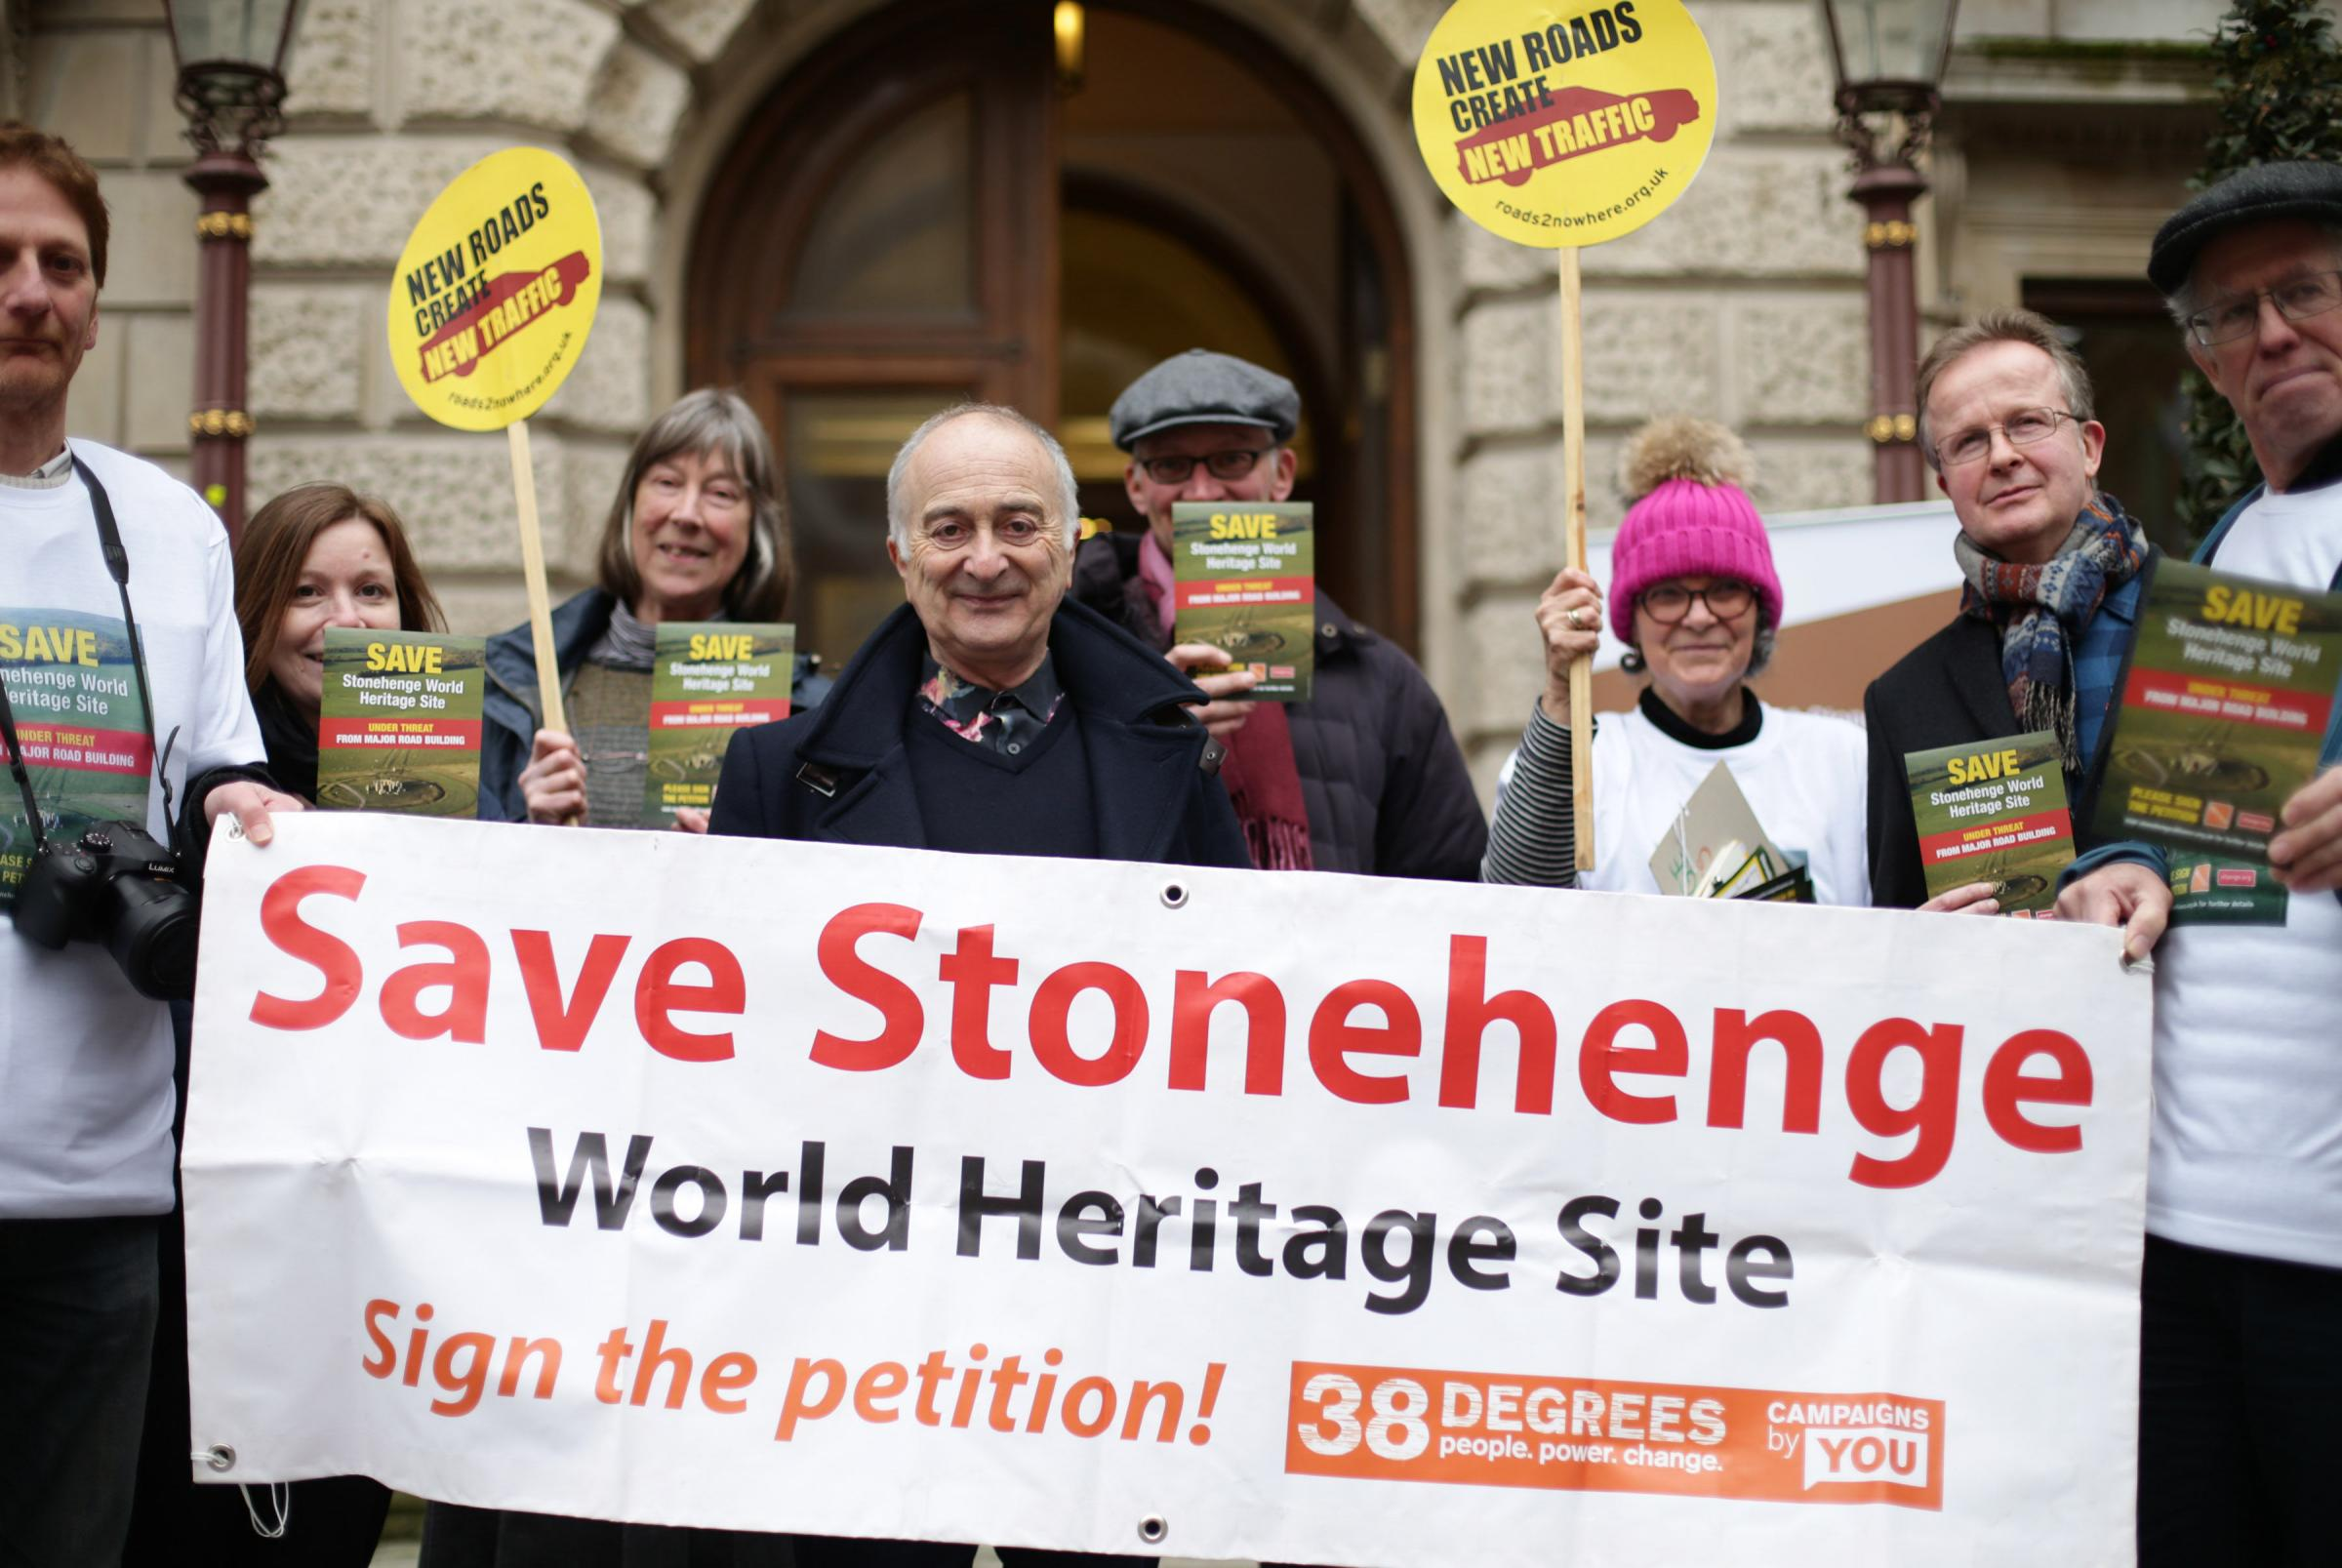 Time Team presenter Tony Robinson, centre, and members of Stonehenge Alliance protest against road building plans for the Stonehenge World Heritage Site, outside the Society of Antiquaries, Burlington House, London. Picture: Yui Mok/PA Wire